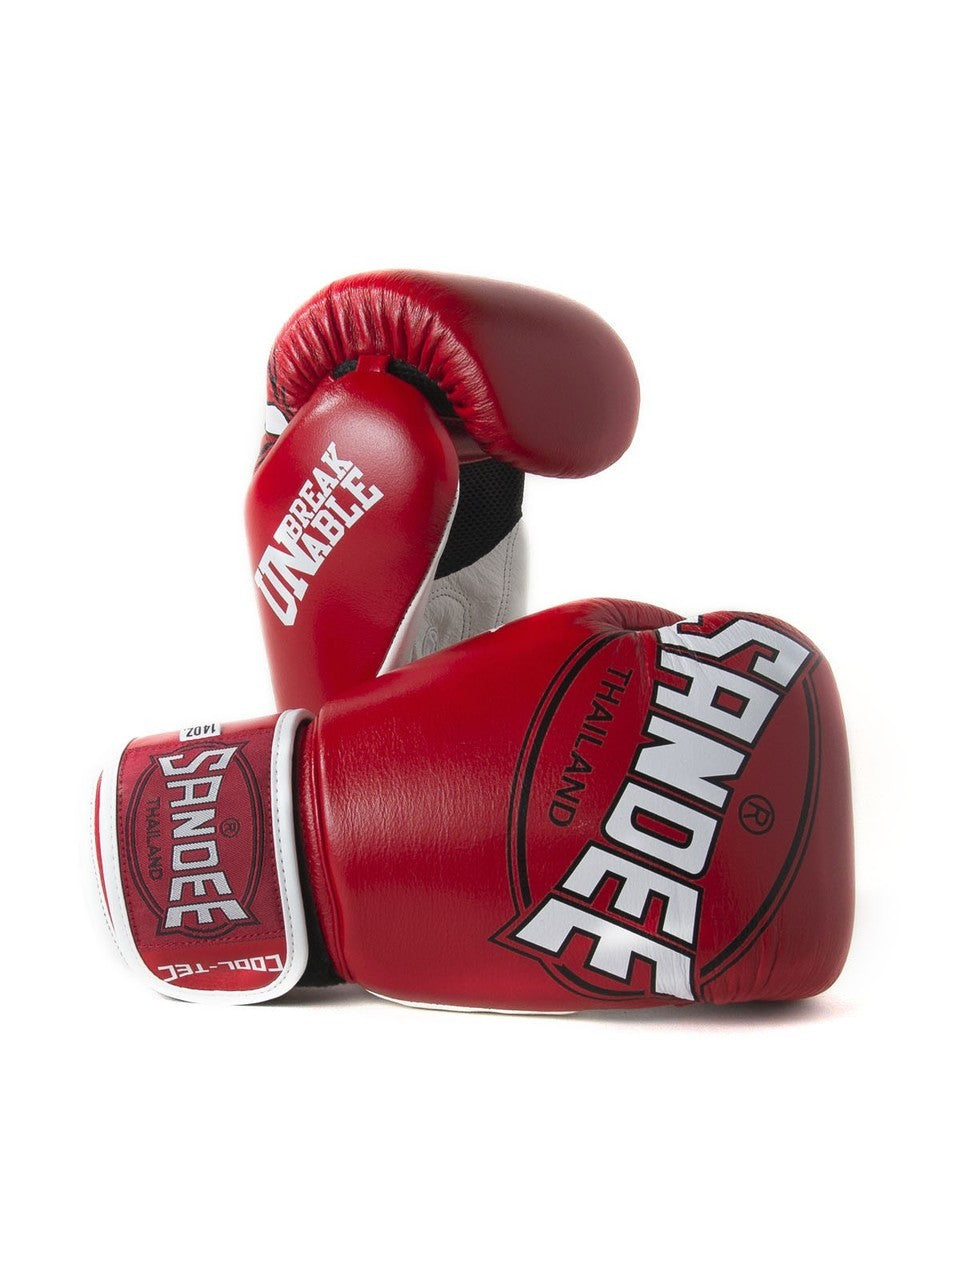 Image of Sandee Cool Tec Red Leather Boxing Gloves